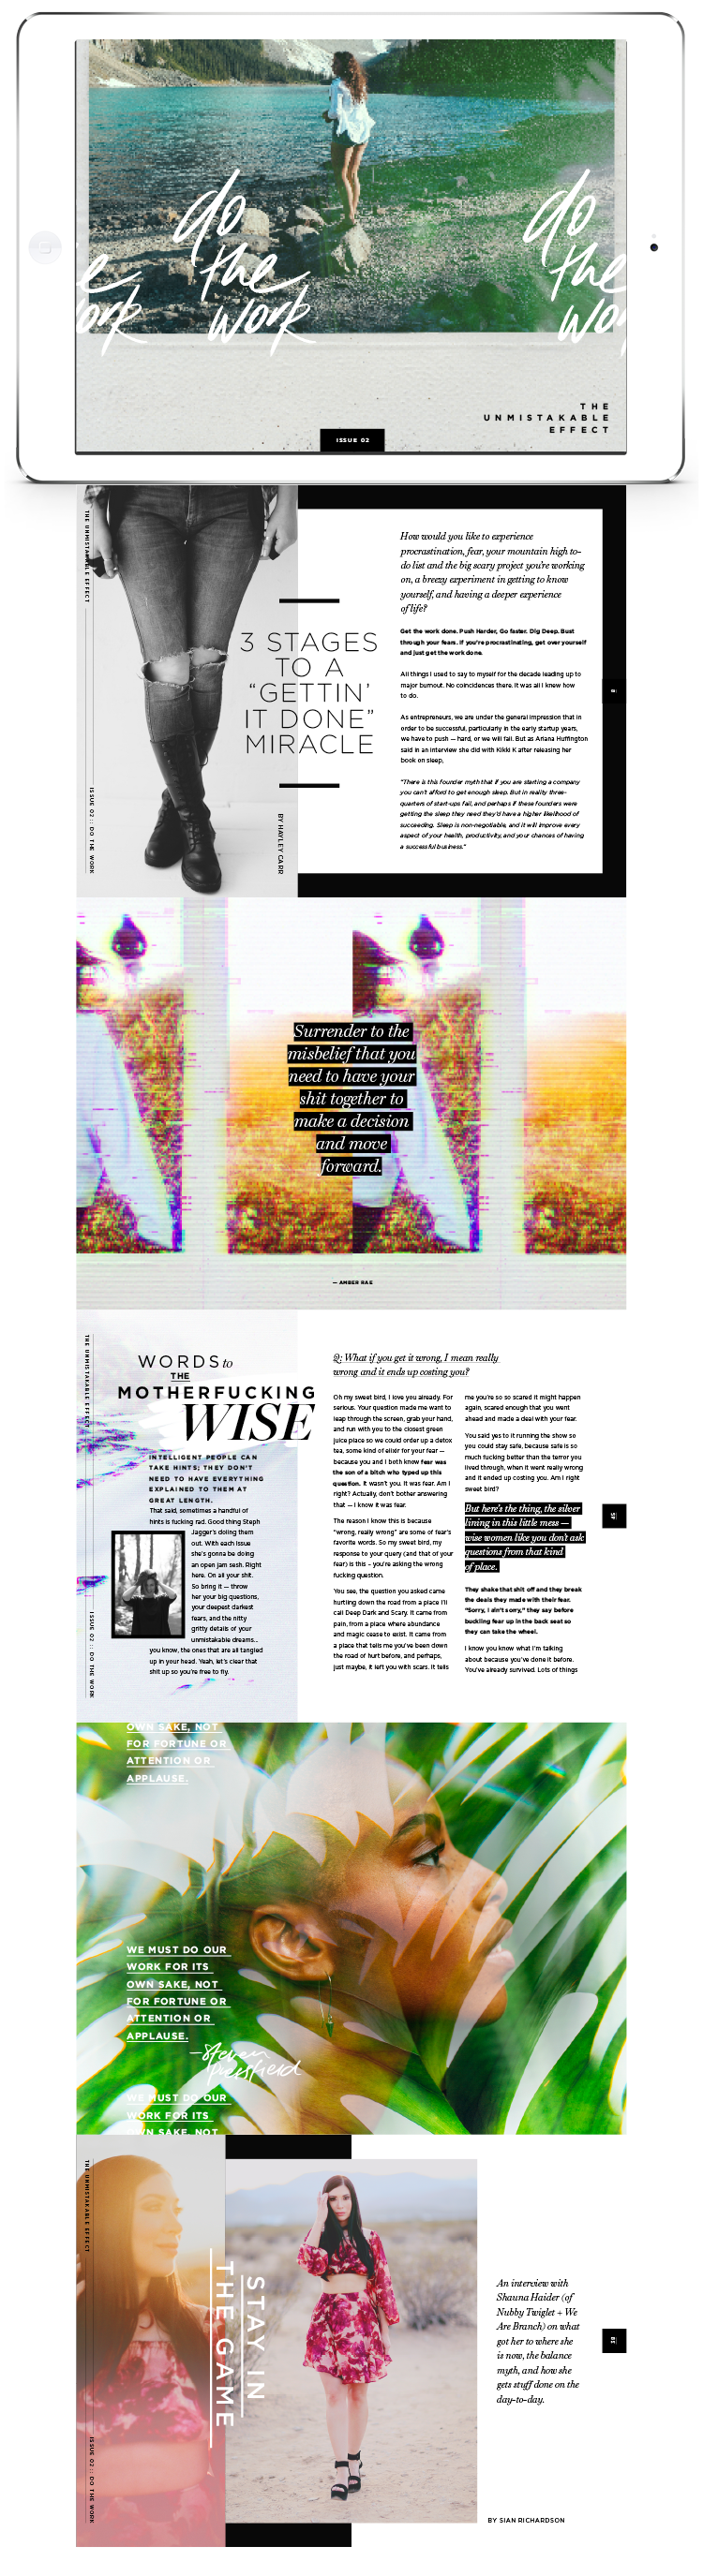 The Unmistakable Effect | Digital + Print Magazine | sianrichardson.co